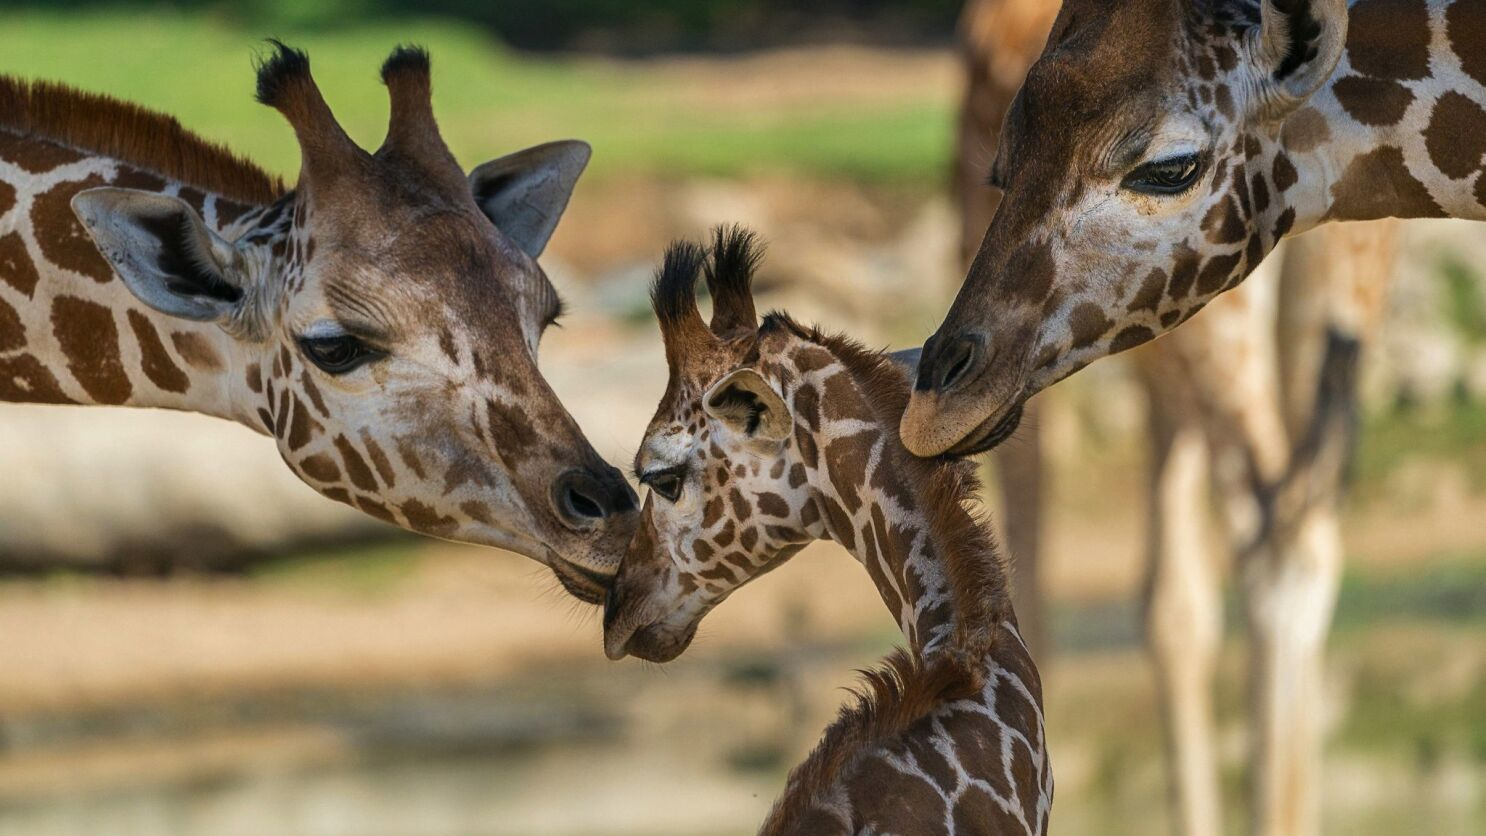 Some giraffe populations critically endangered, while others recover - The  San Diego Union-Tribune